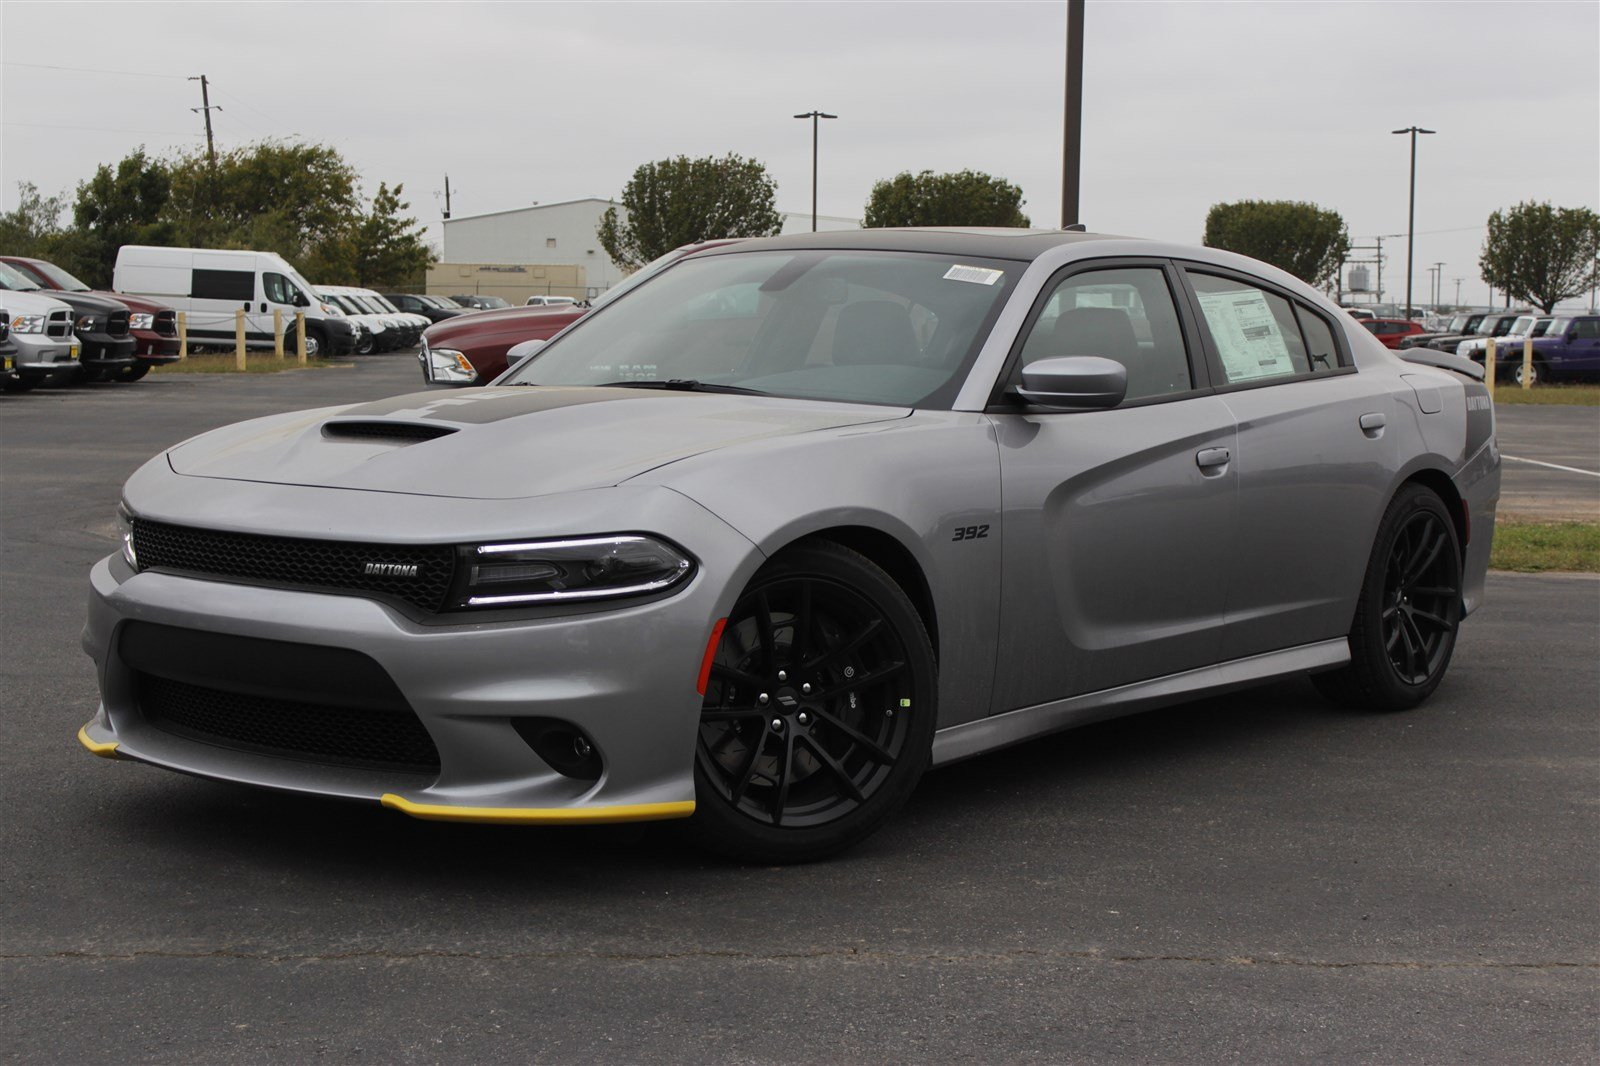 New 2018 Dodge Charger Daytona 392